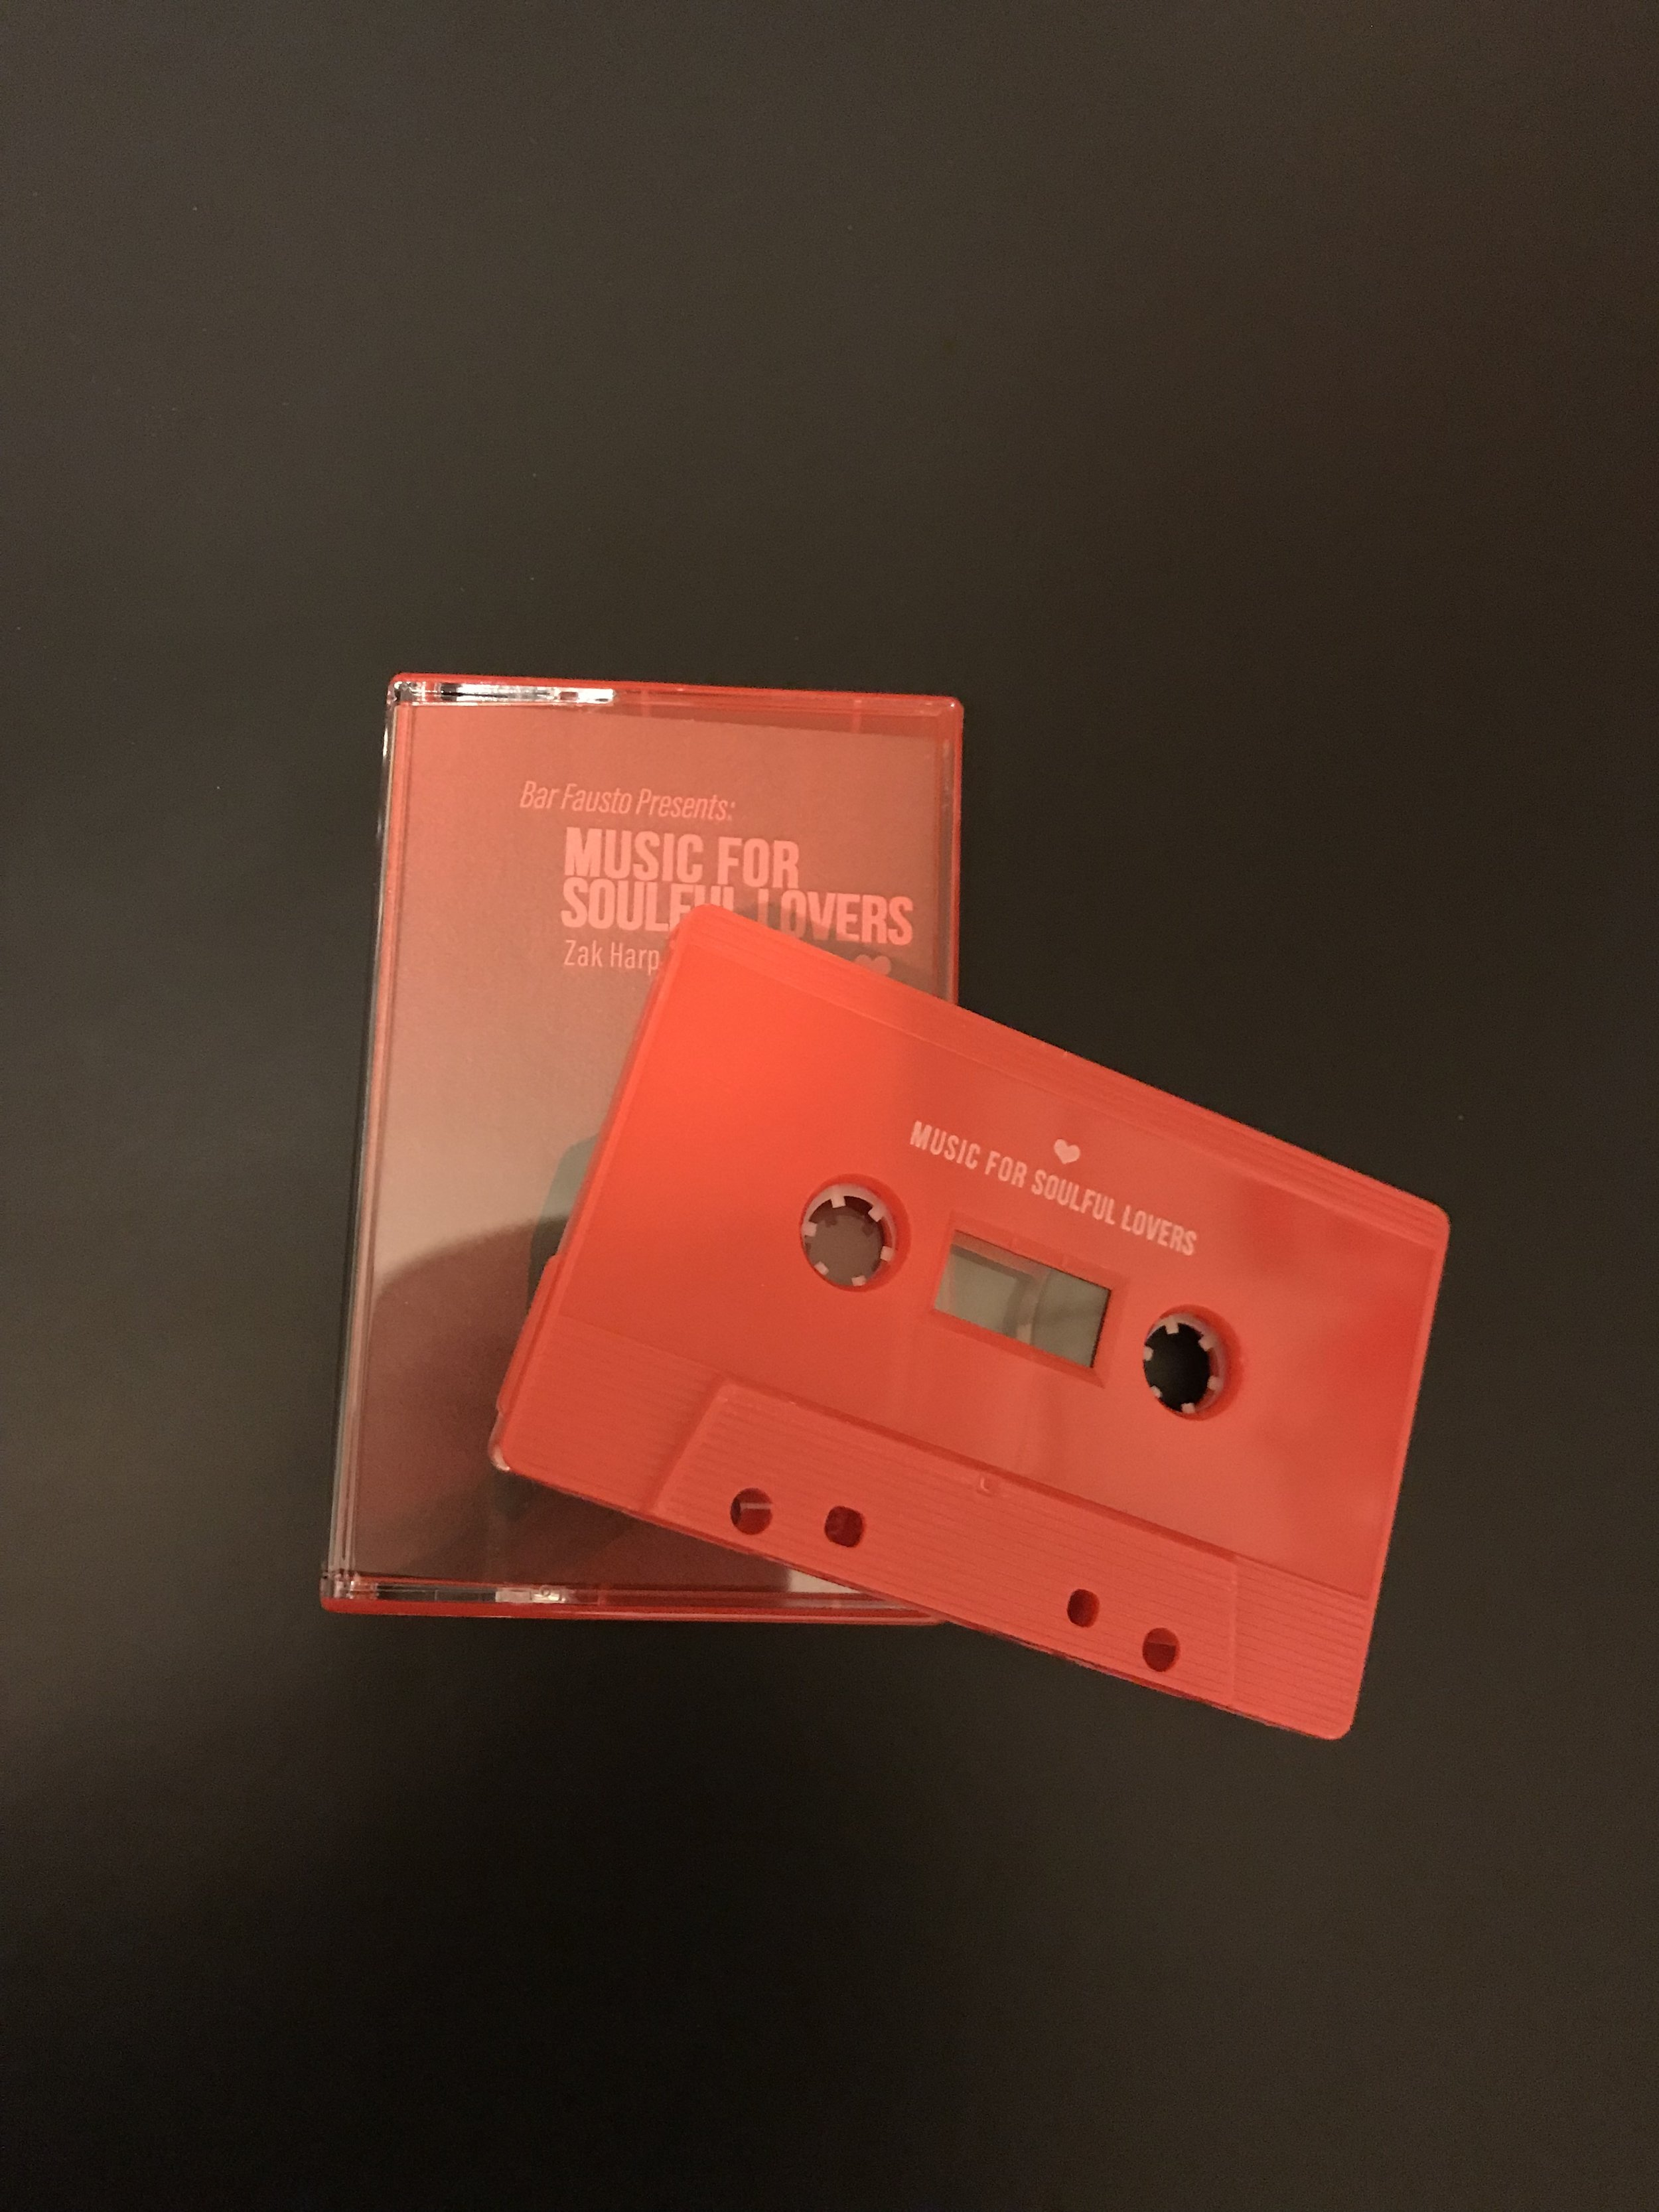 Sneak peak at what the tapes look like.